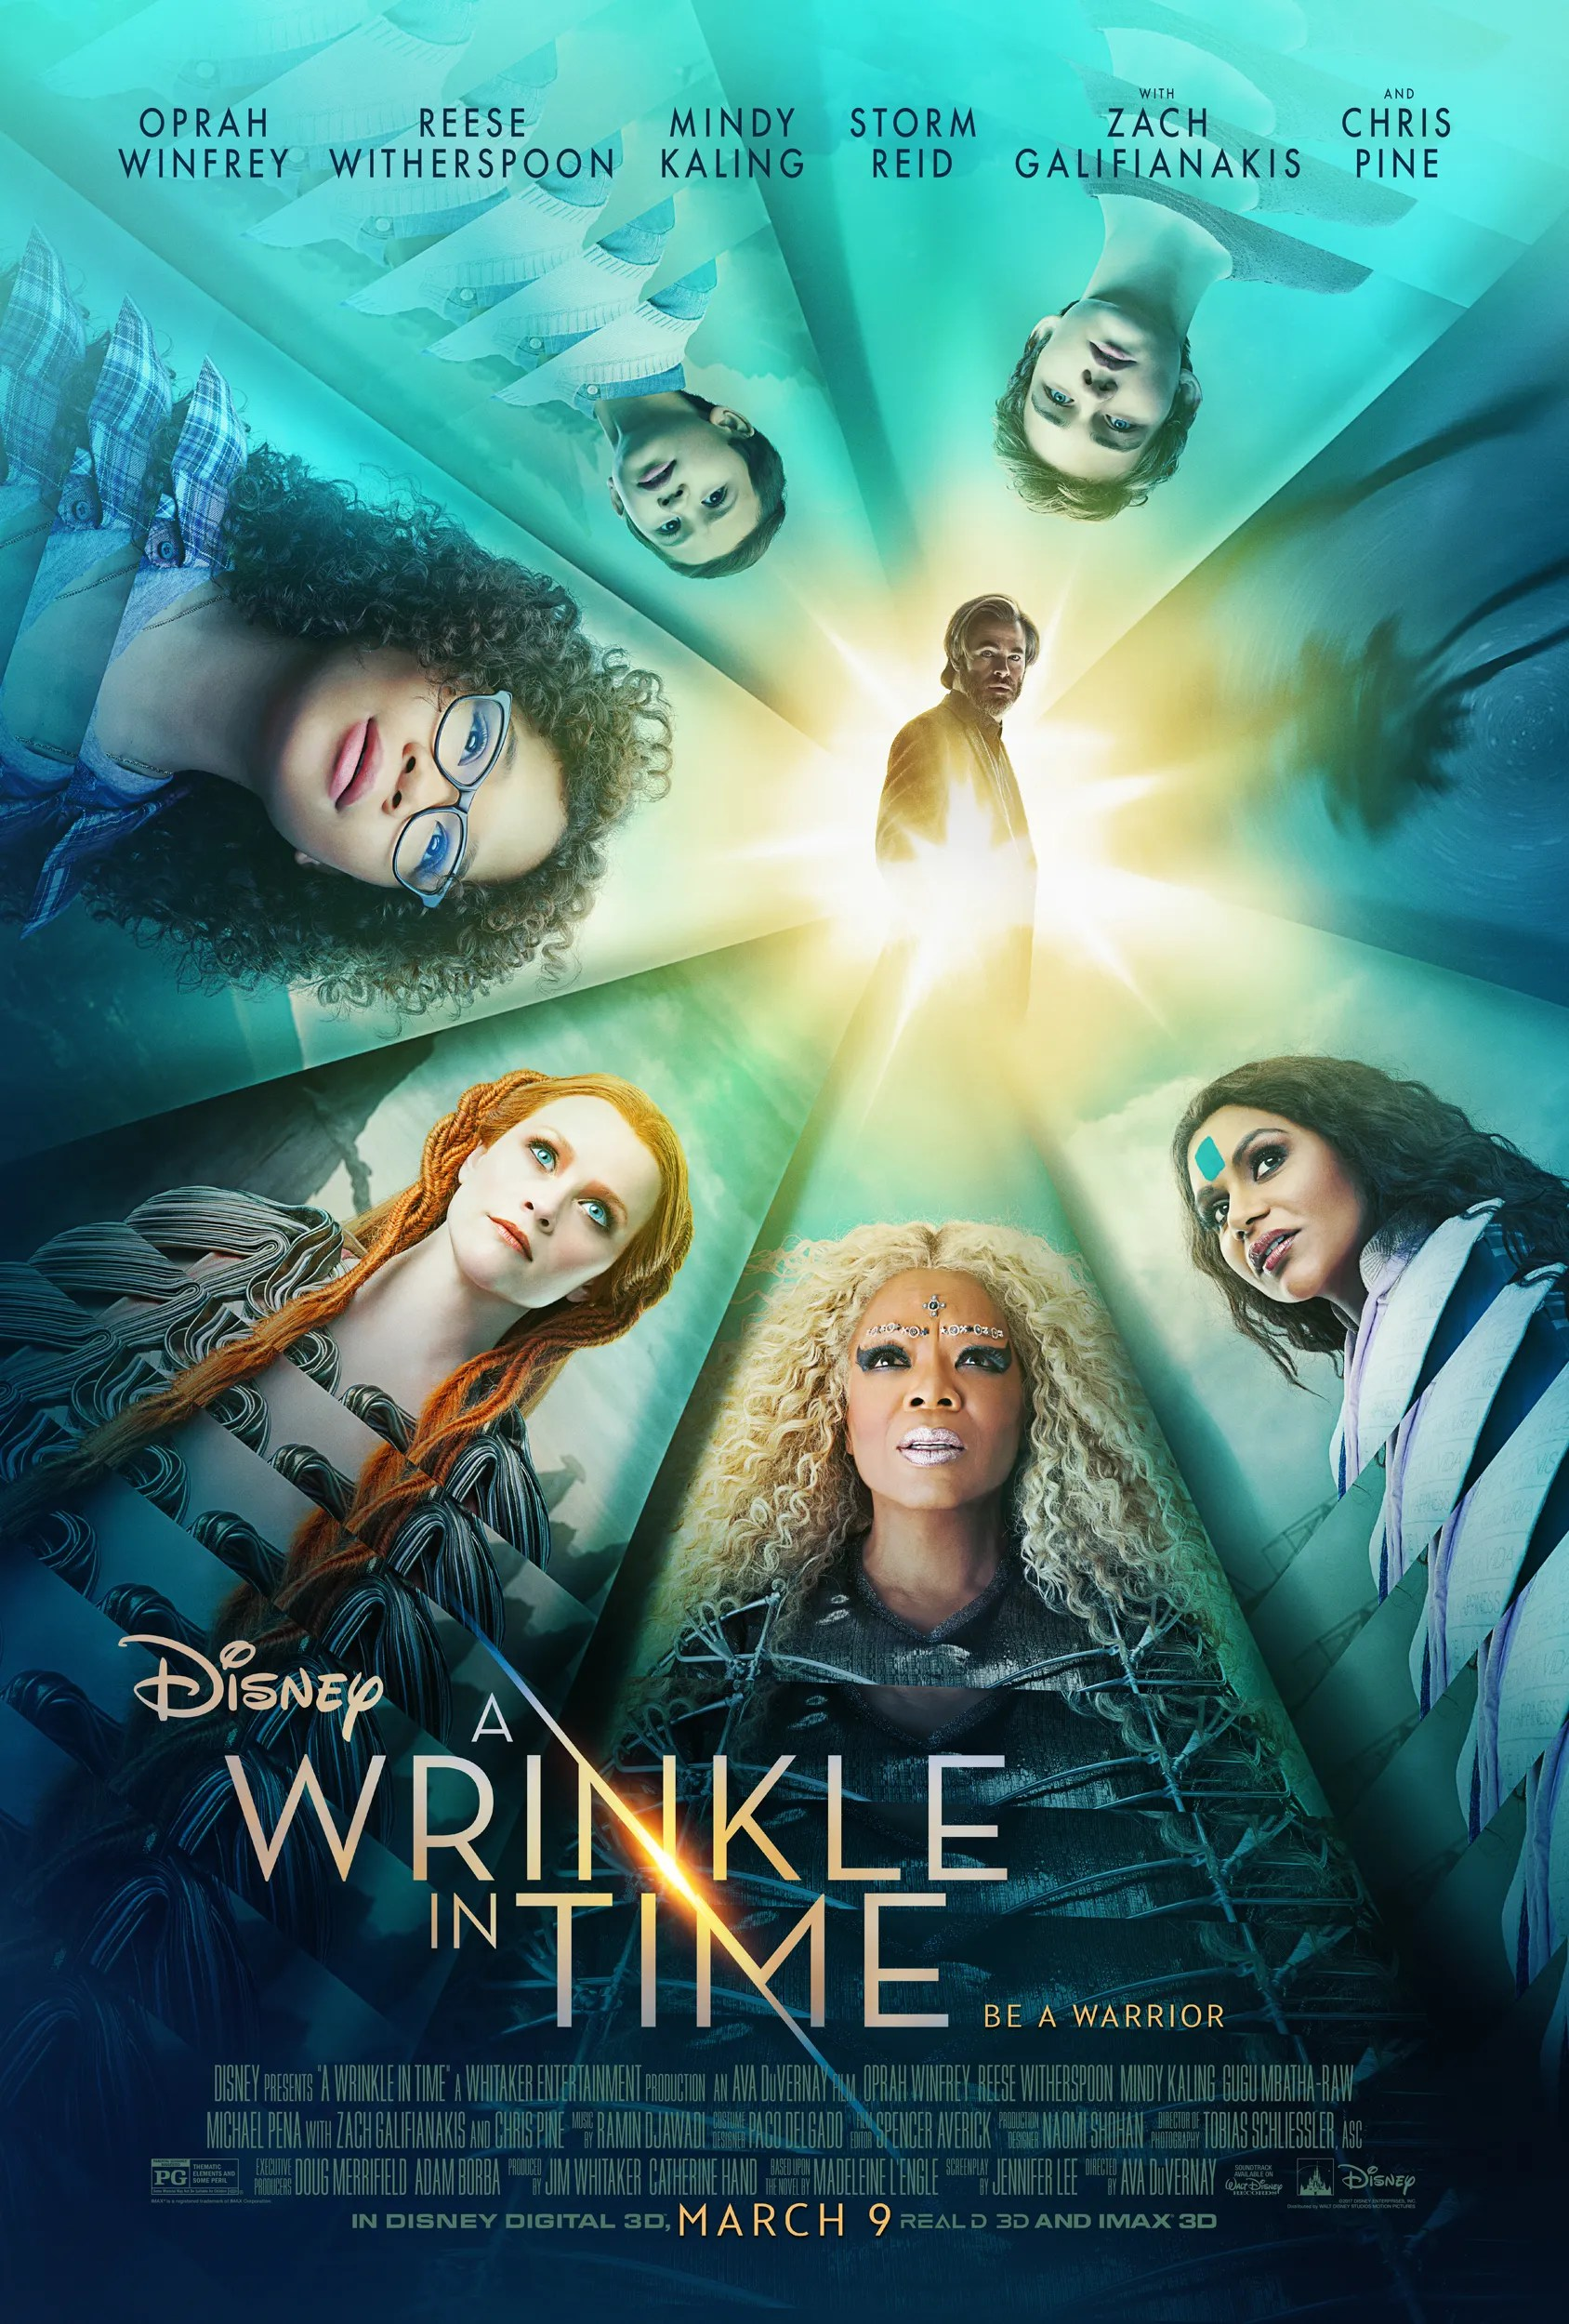 https://i2.wp.com/cdn.collider.com/wp-content/uploads/2017/11/a-wrinkle-in-time-poster.jpg